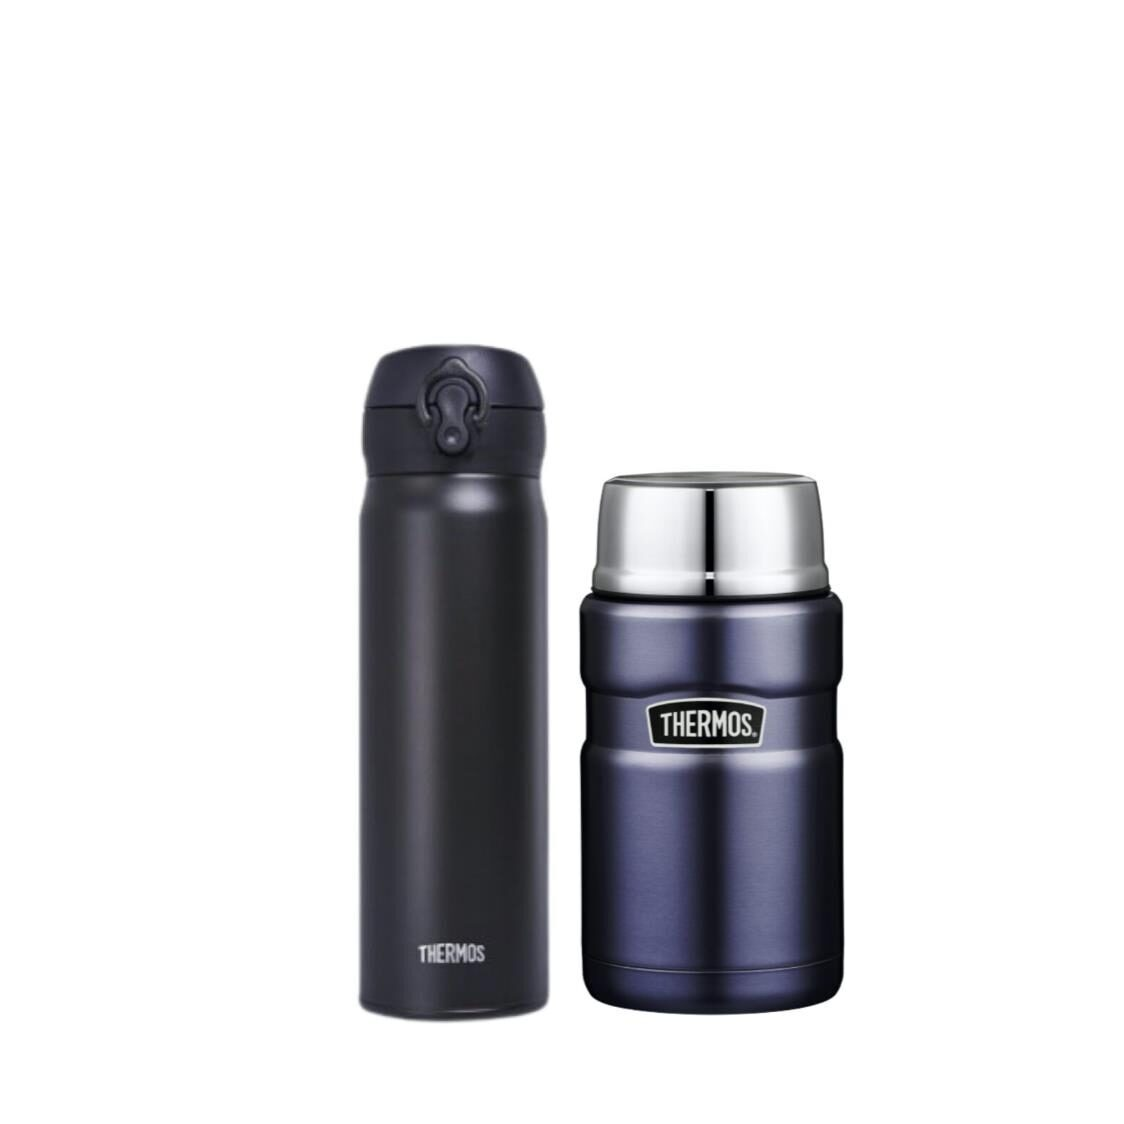 Thermos 05L Stainless Steel One Push Tumbler  071L Stainless Steel Food Jar Bundle Set